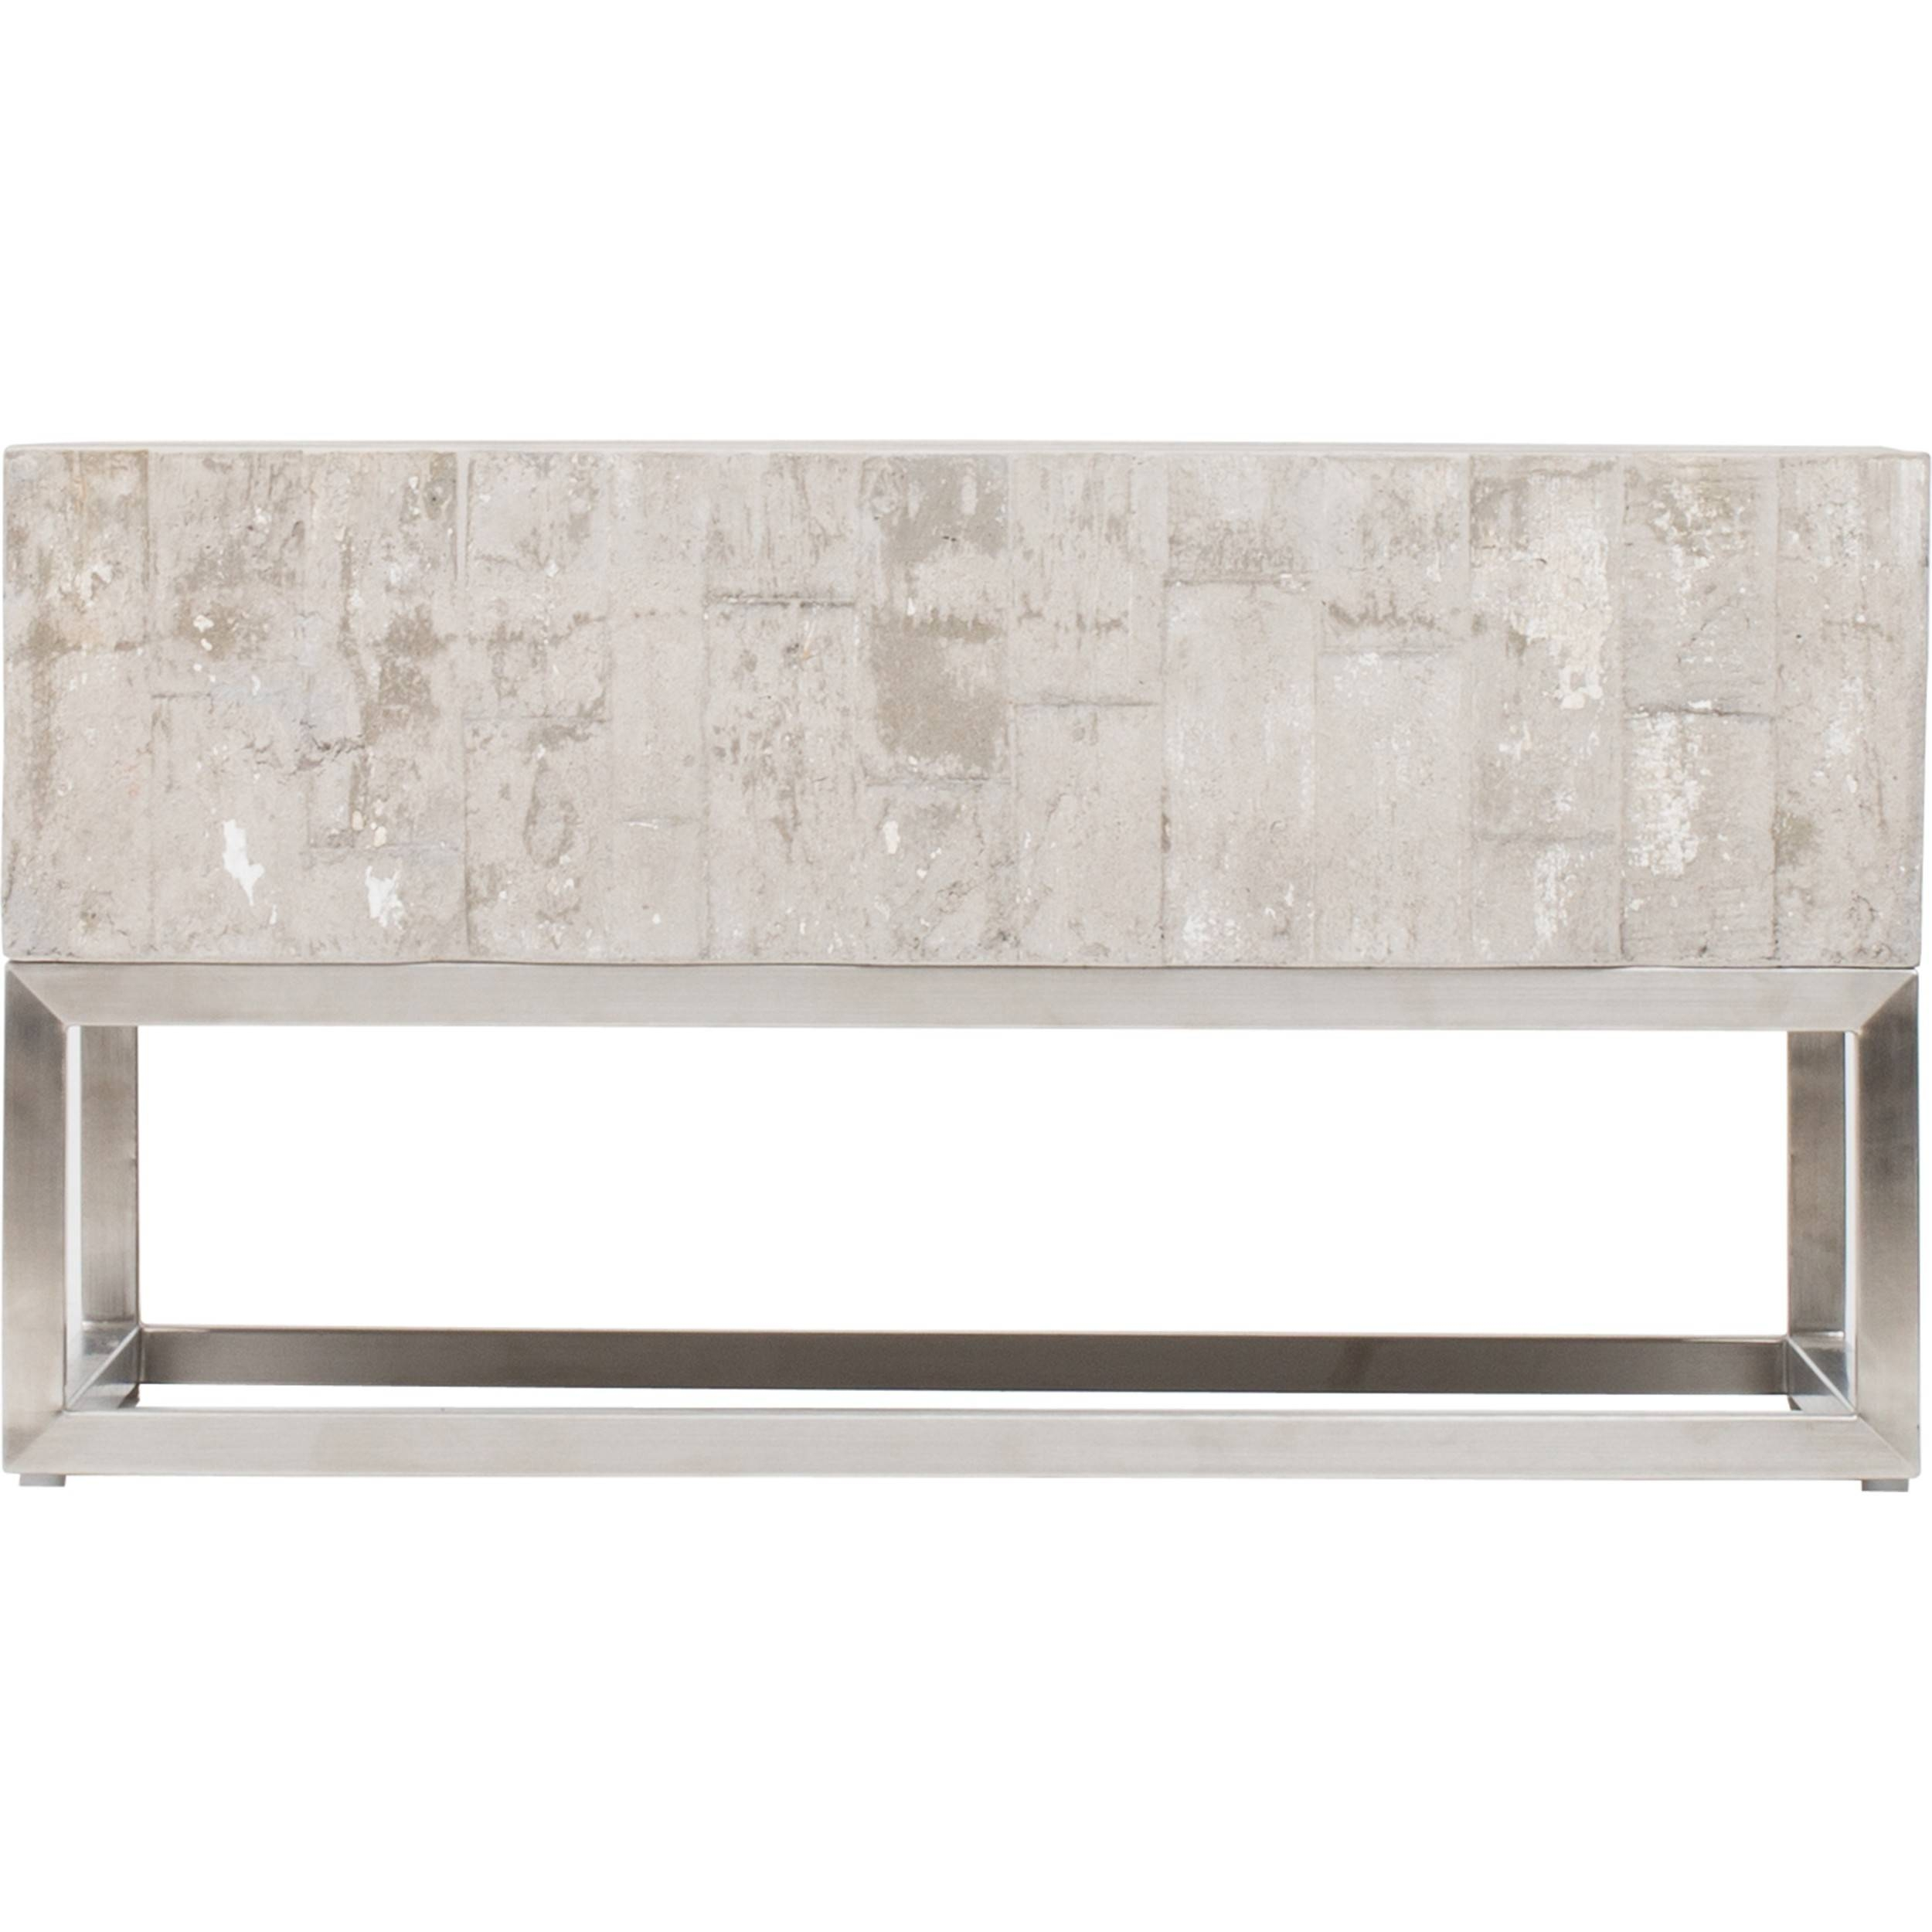 Concrete And Chrome Coffee Table – Coffee Tables – Accent Tables In Chrome Coffee Tables (View 16 of 30)